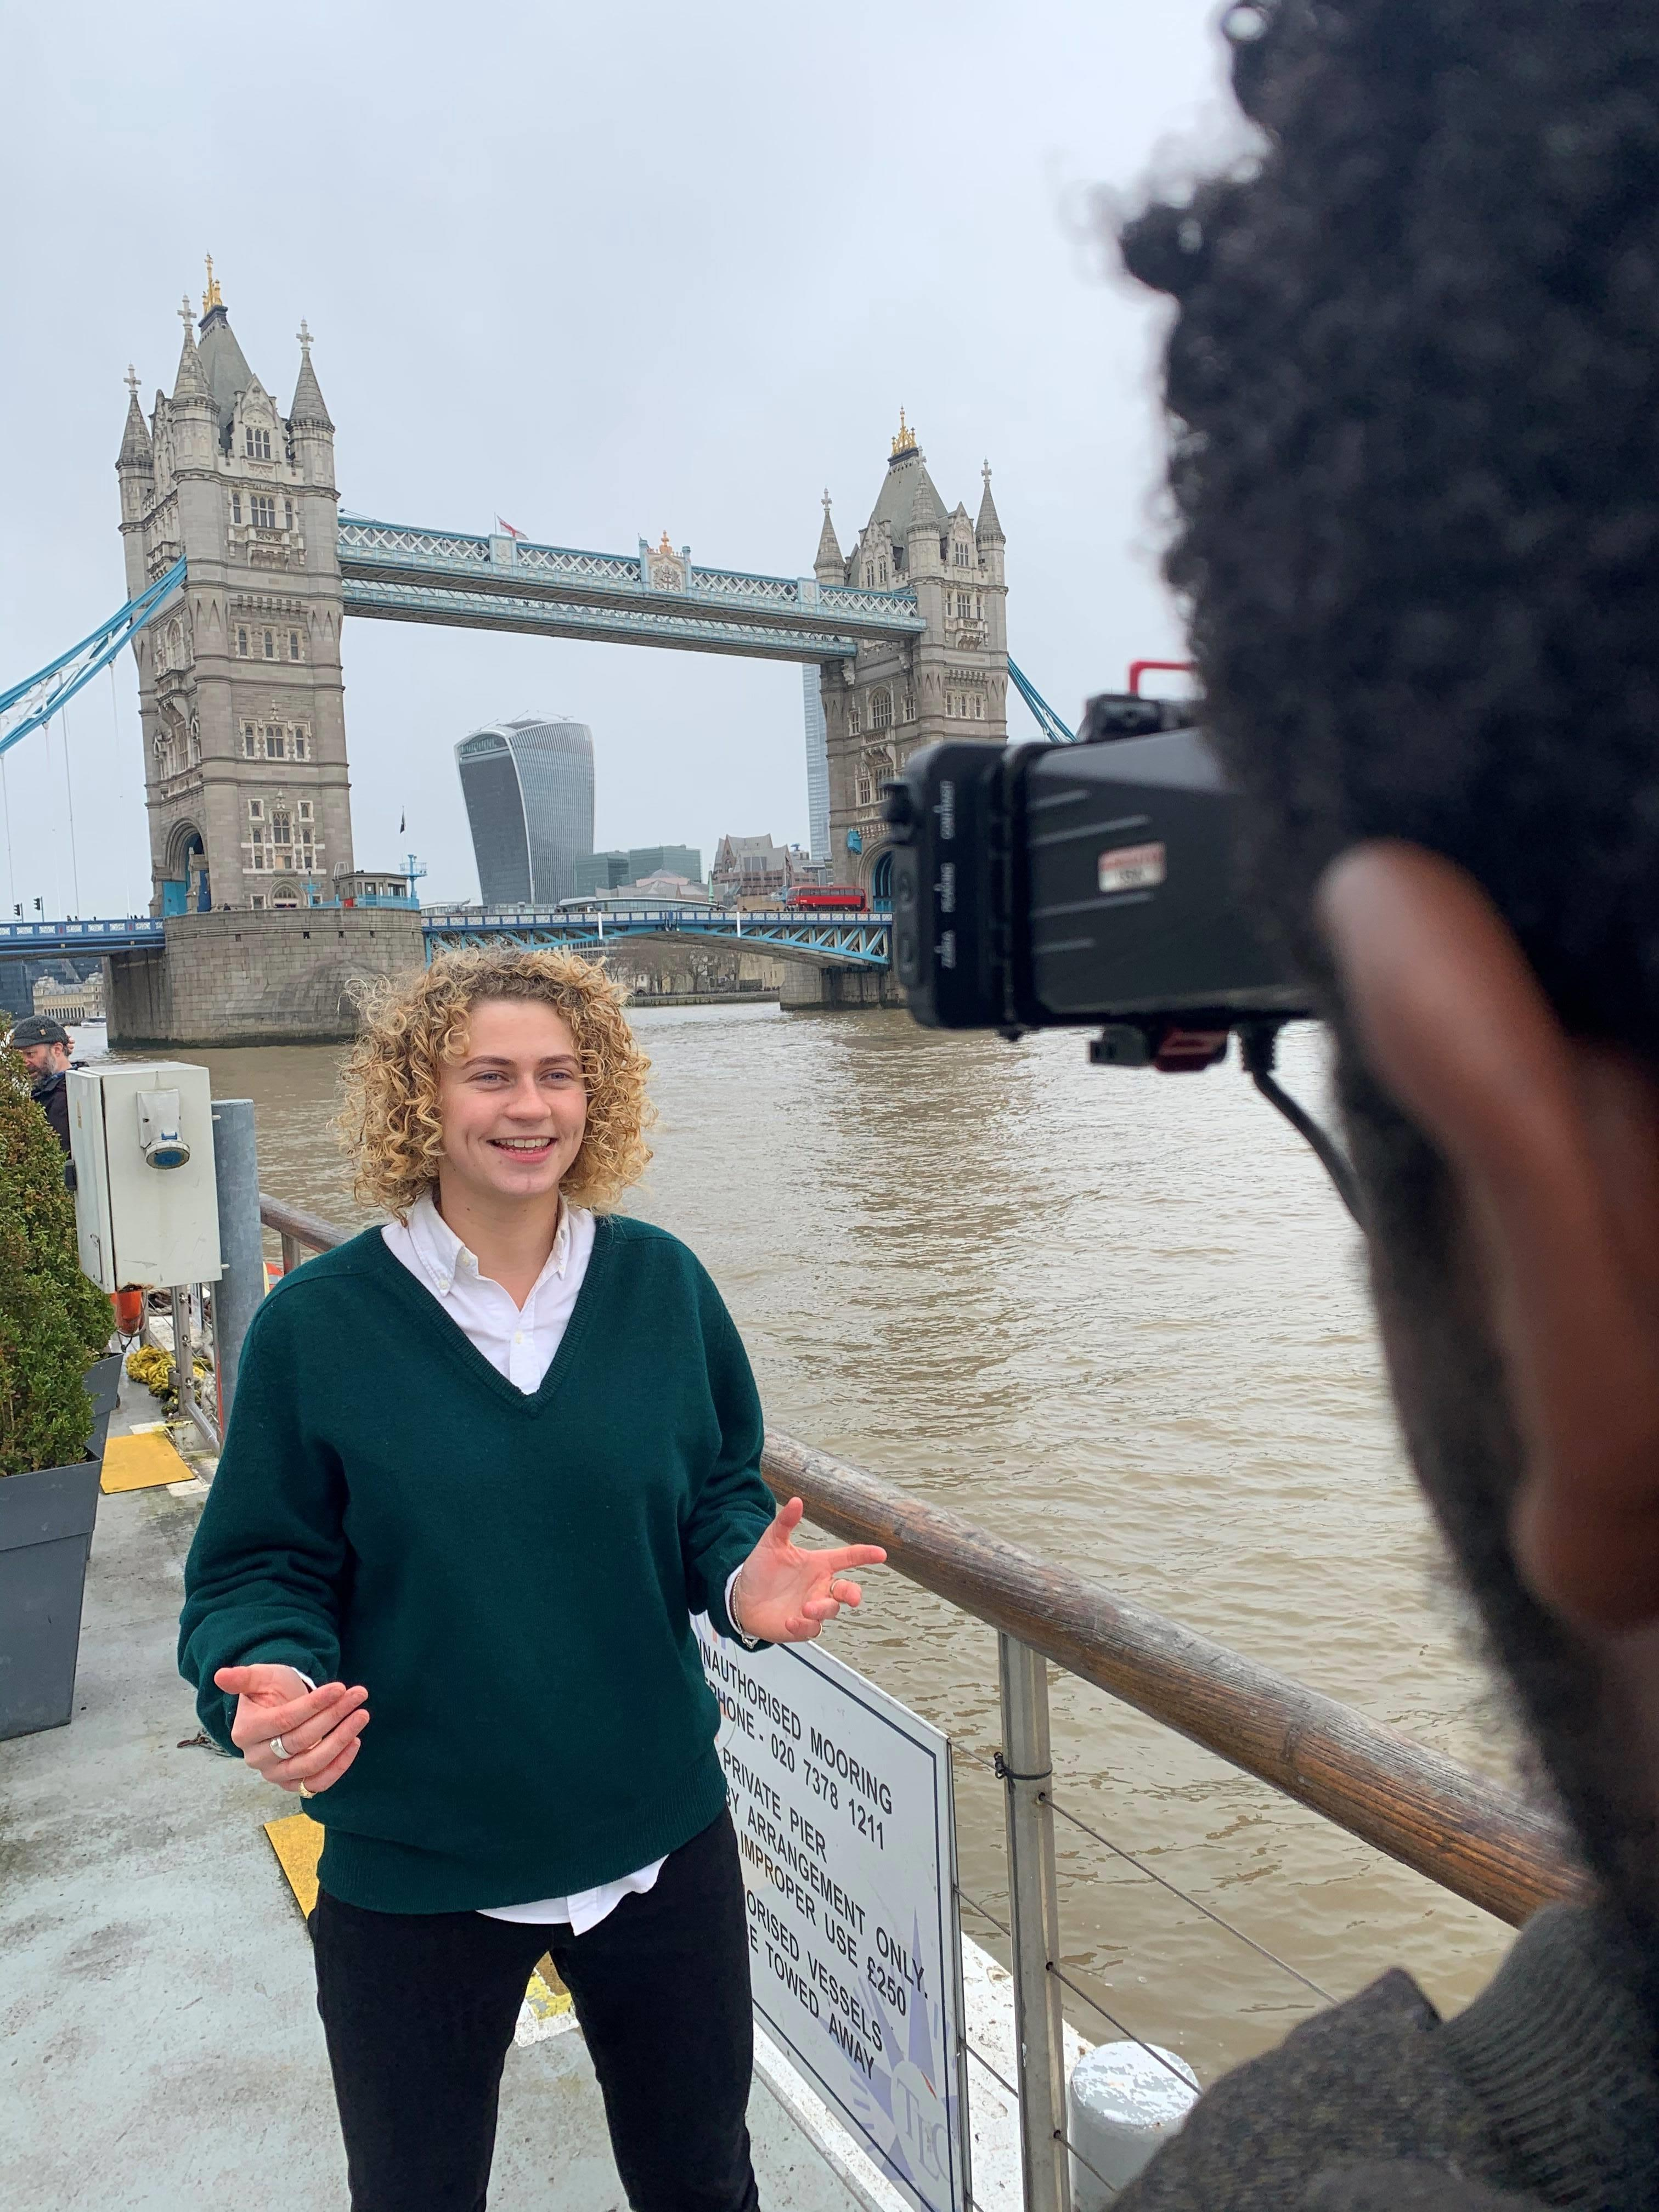 connie on camera in front of london bridge